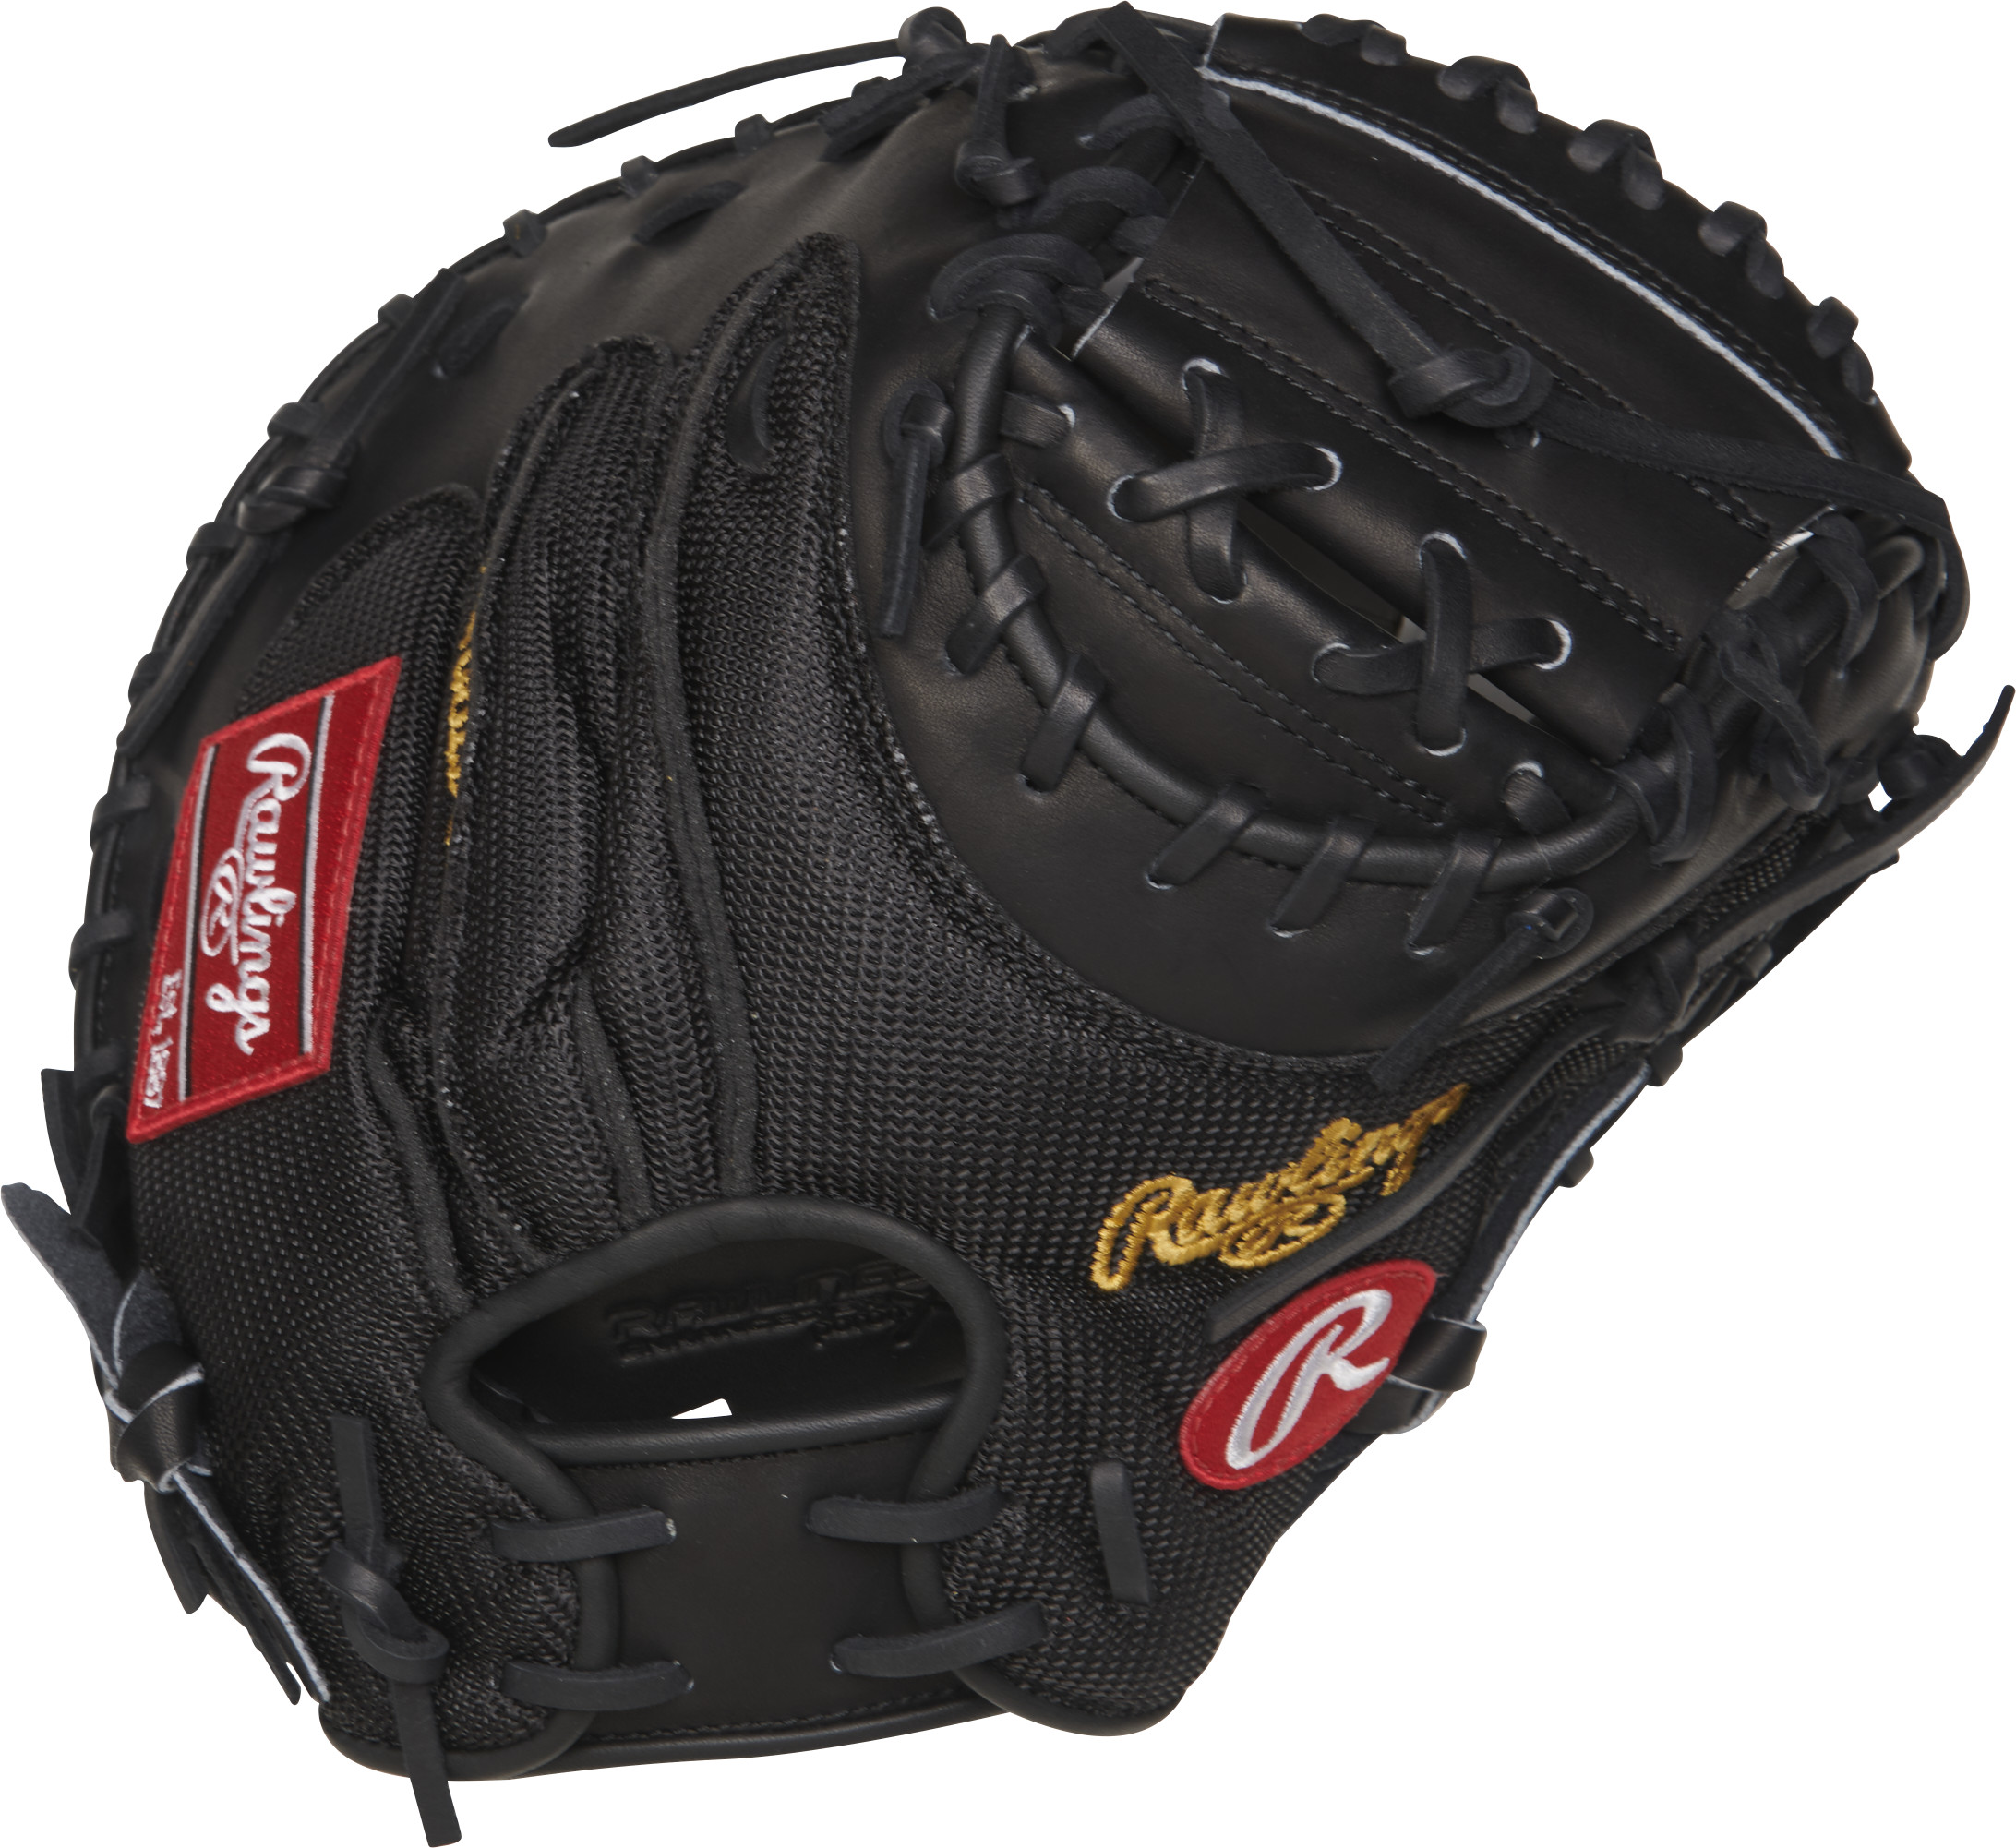 http://www.bestbatdeals.com/images/gloves/rawlings/PROYM4-2.jpg